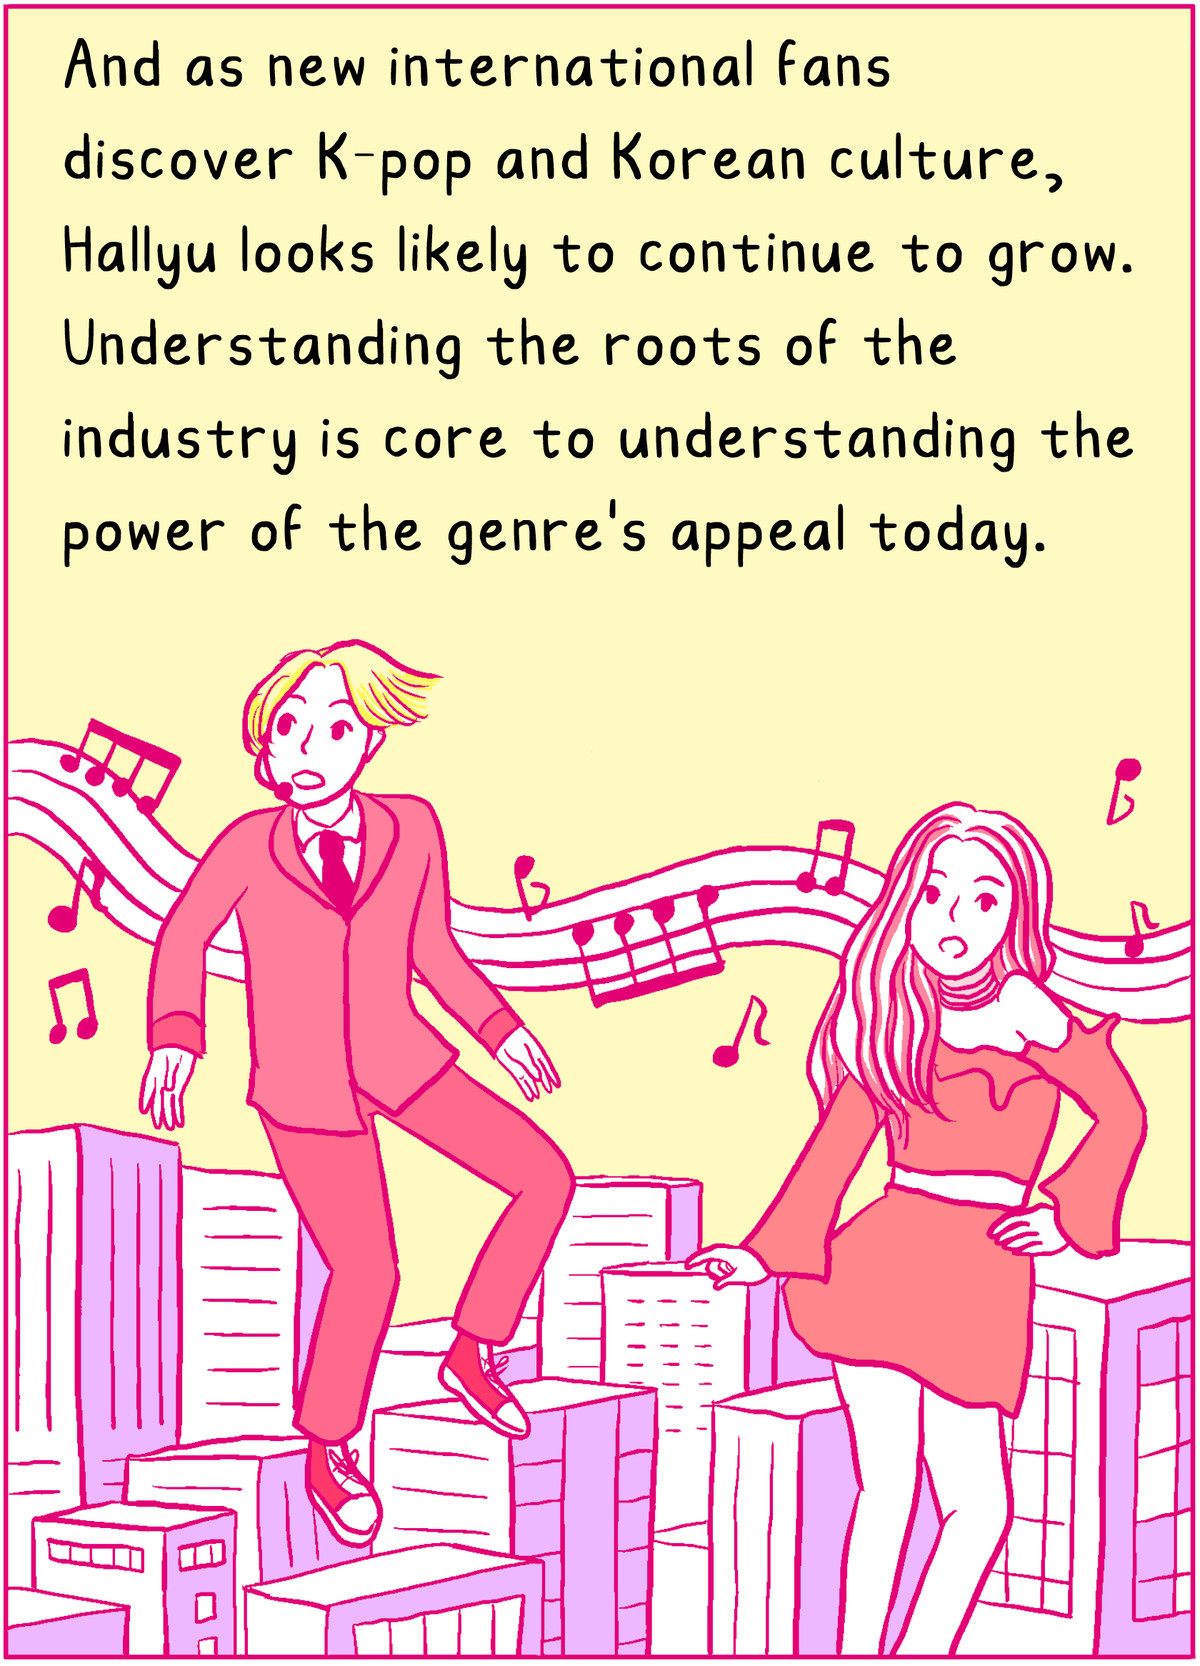 As new international fans discover K-pop and Korean culture, Hallyu looks likely to continue to grow. Understanding the roots of the industry is core to understanding the power of the genre's appeal today.